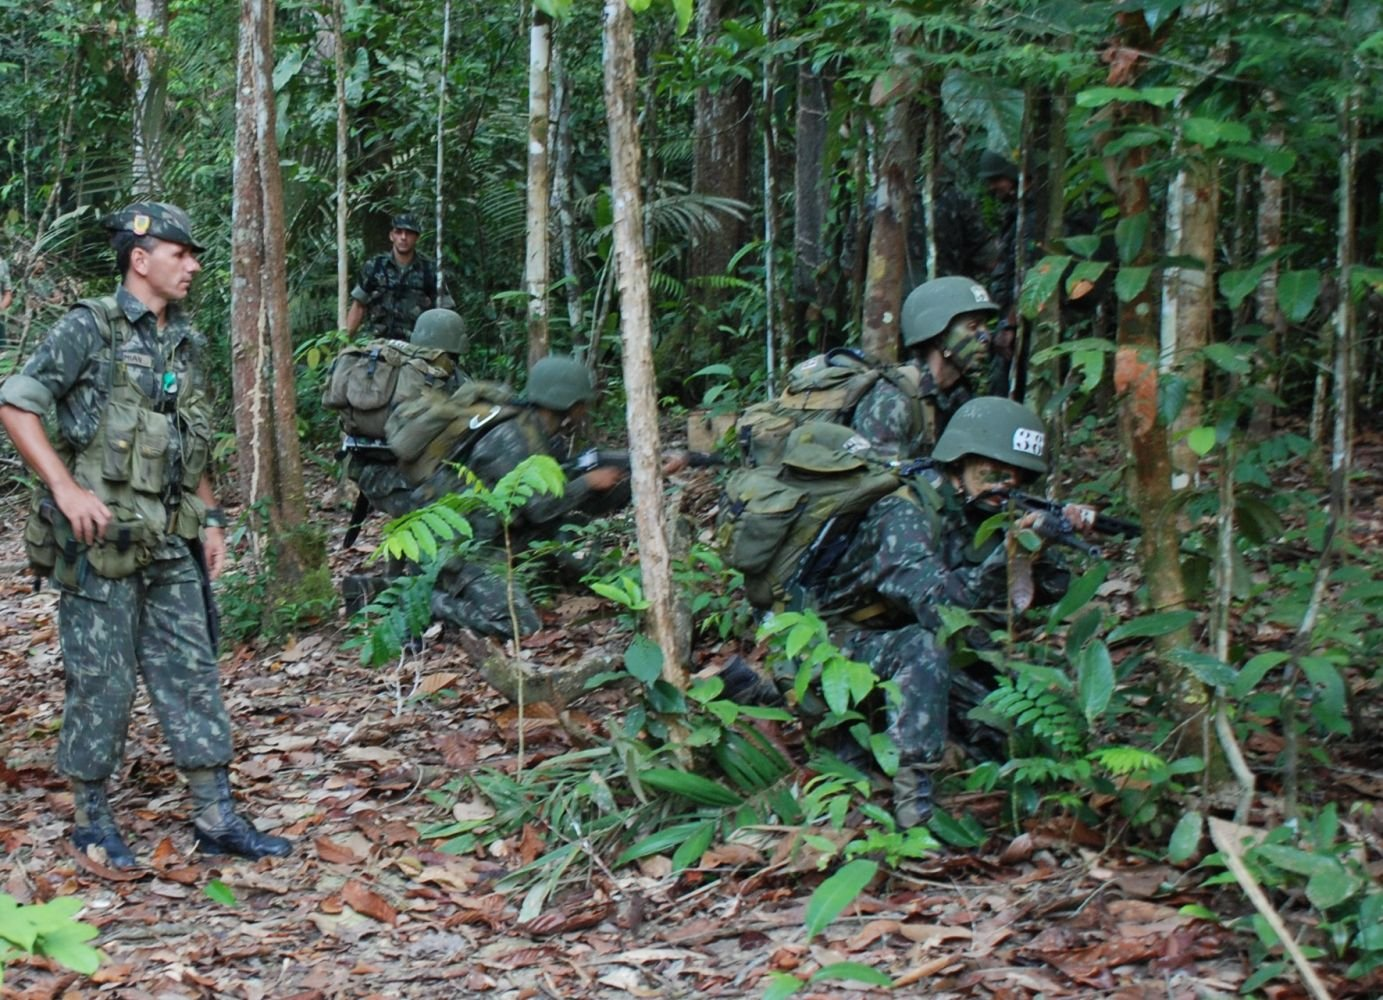 The Fight Against Drug-Trafficking in the Jungles of Rio de Janeiro